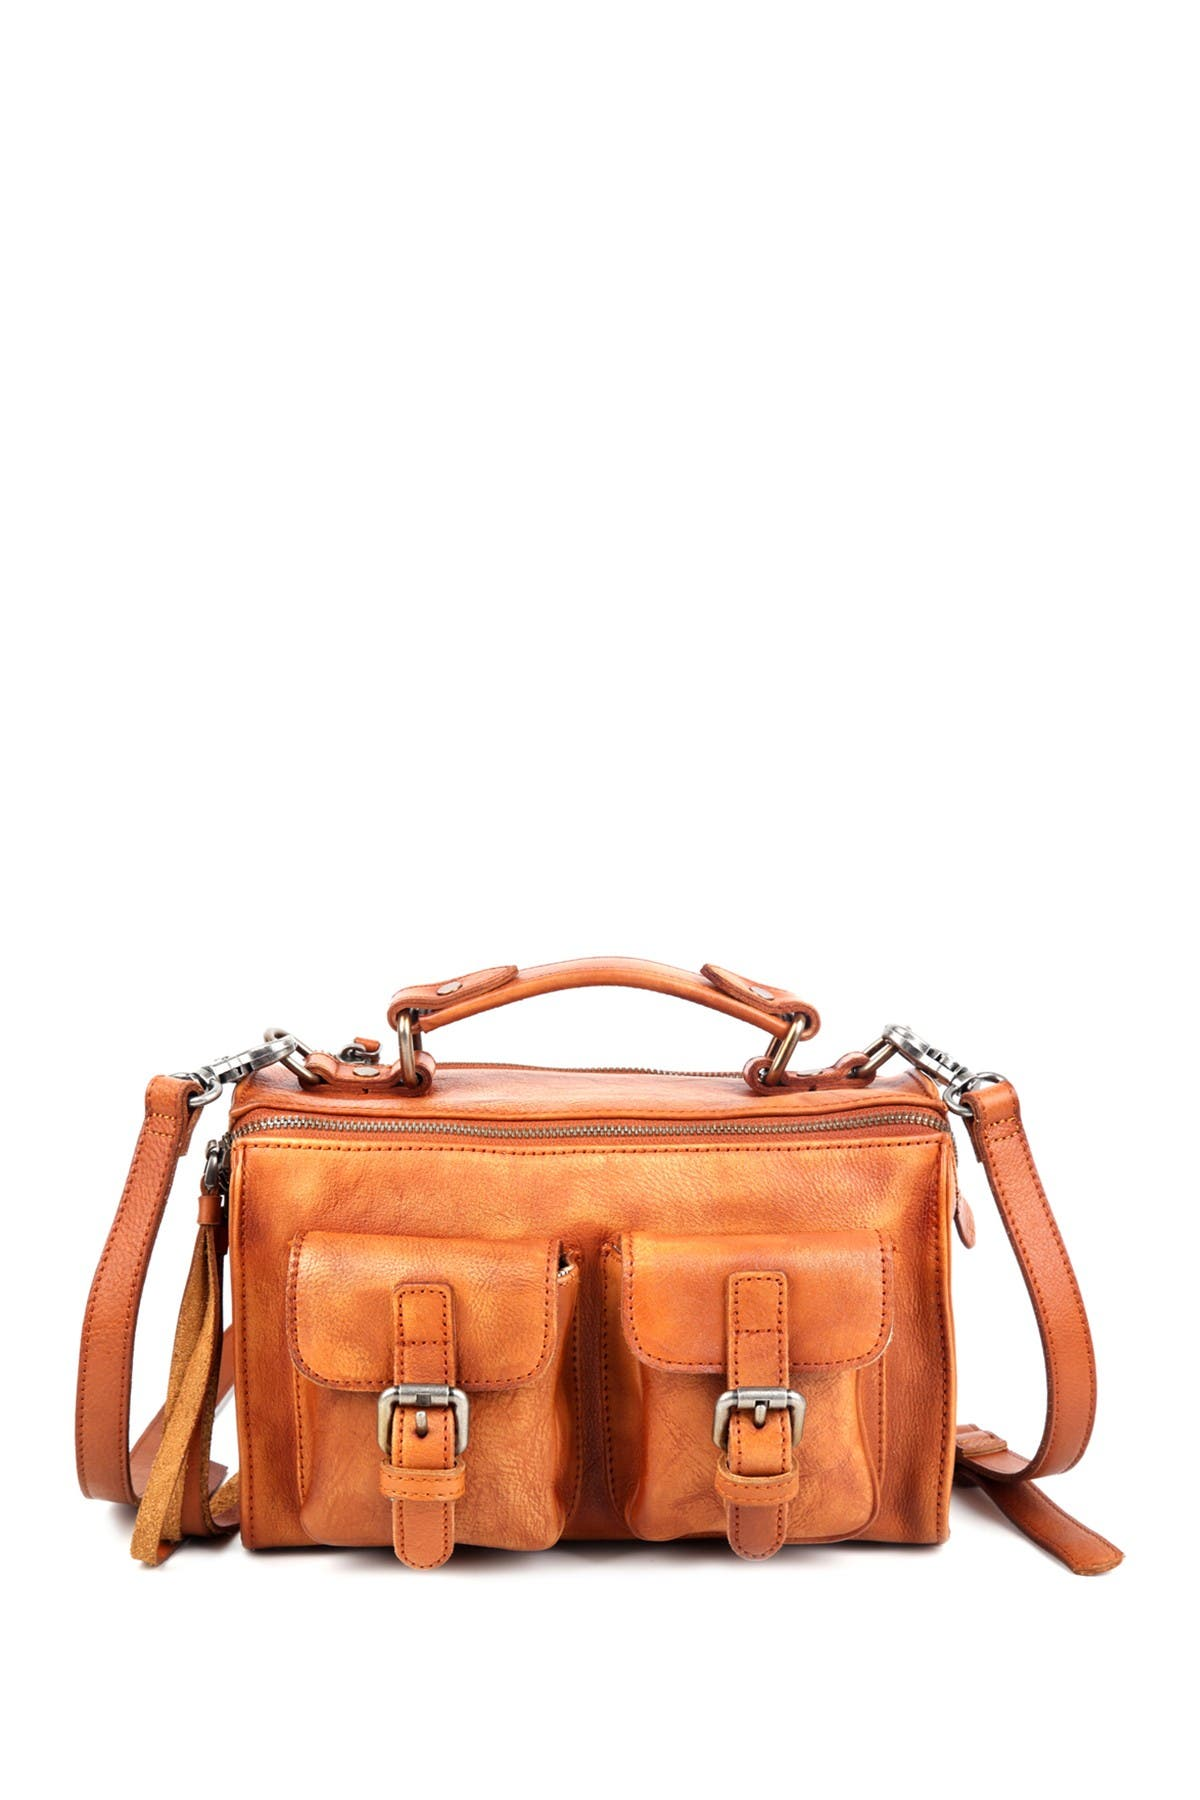 Image of Old Trend Las Luna Leather Crossbody Bag